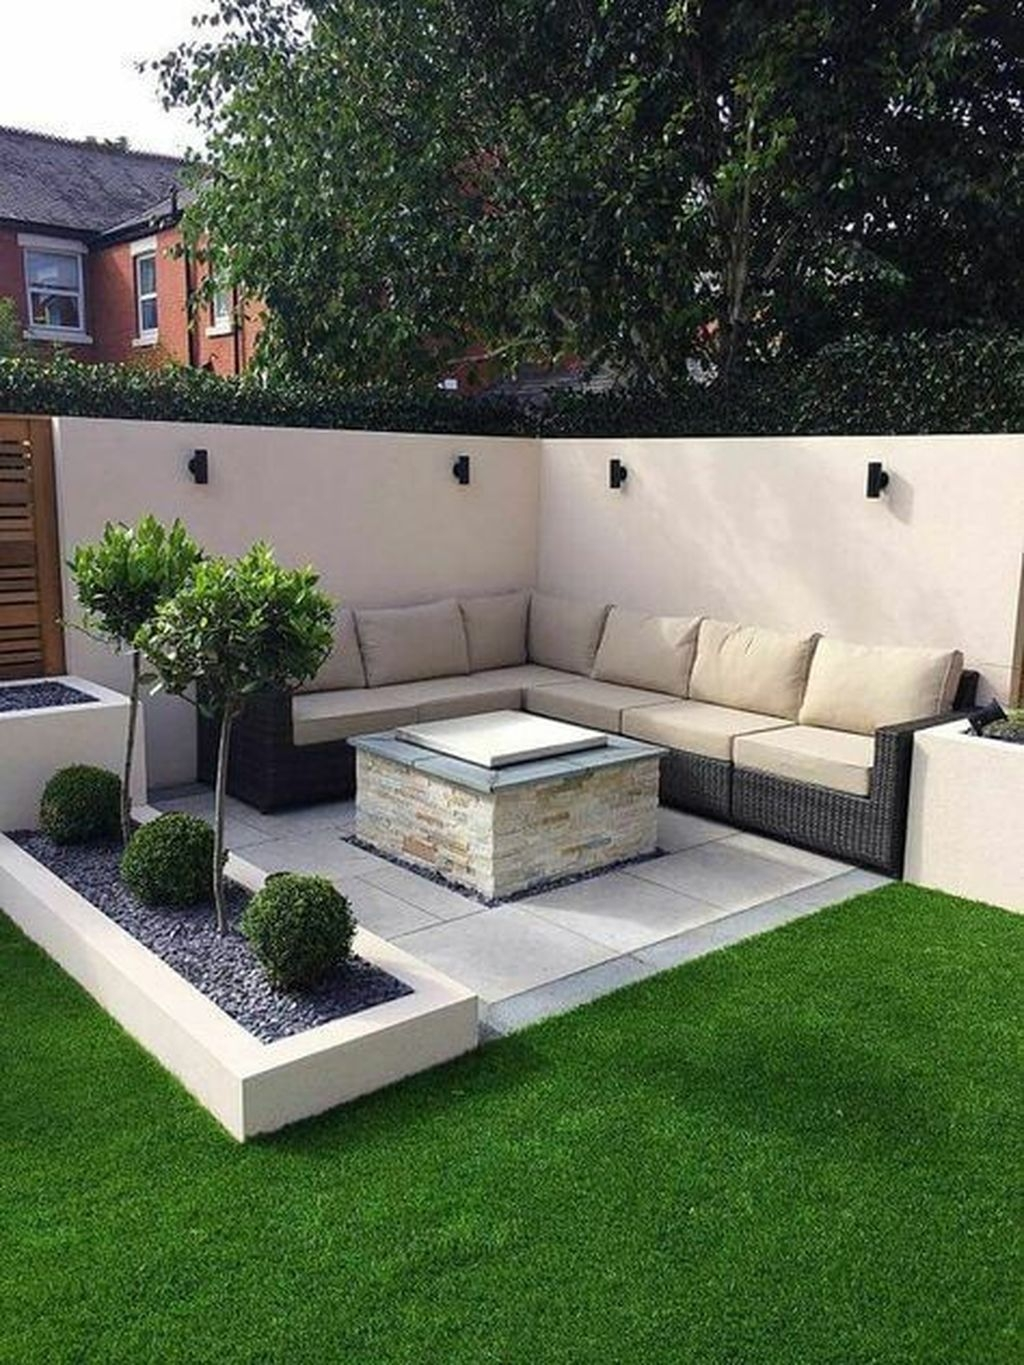 Awesome Modern Garden Architecture Design Ideas 35